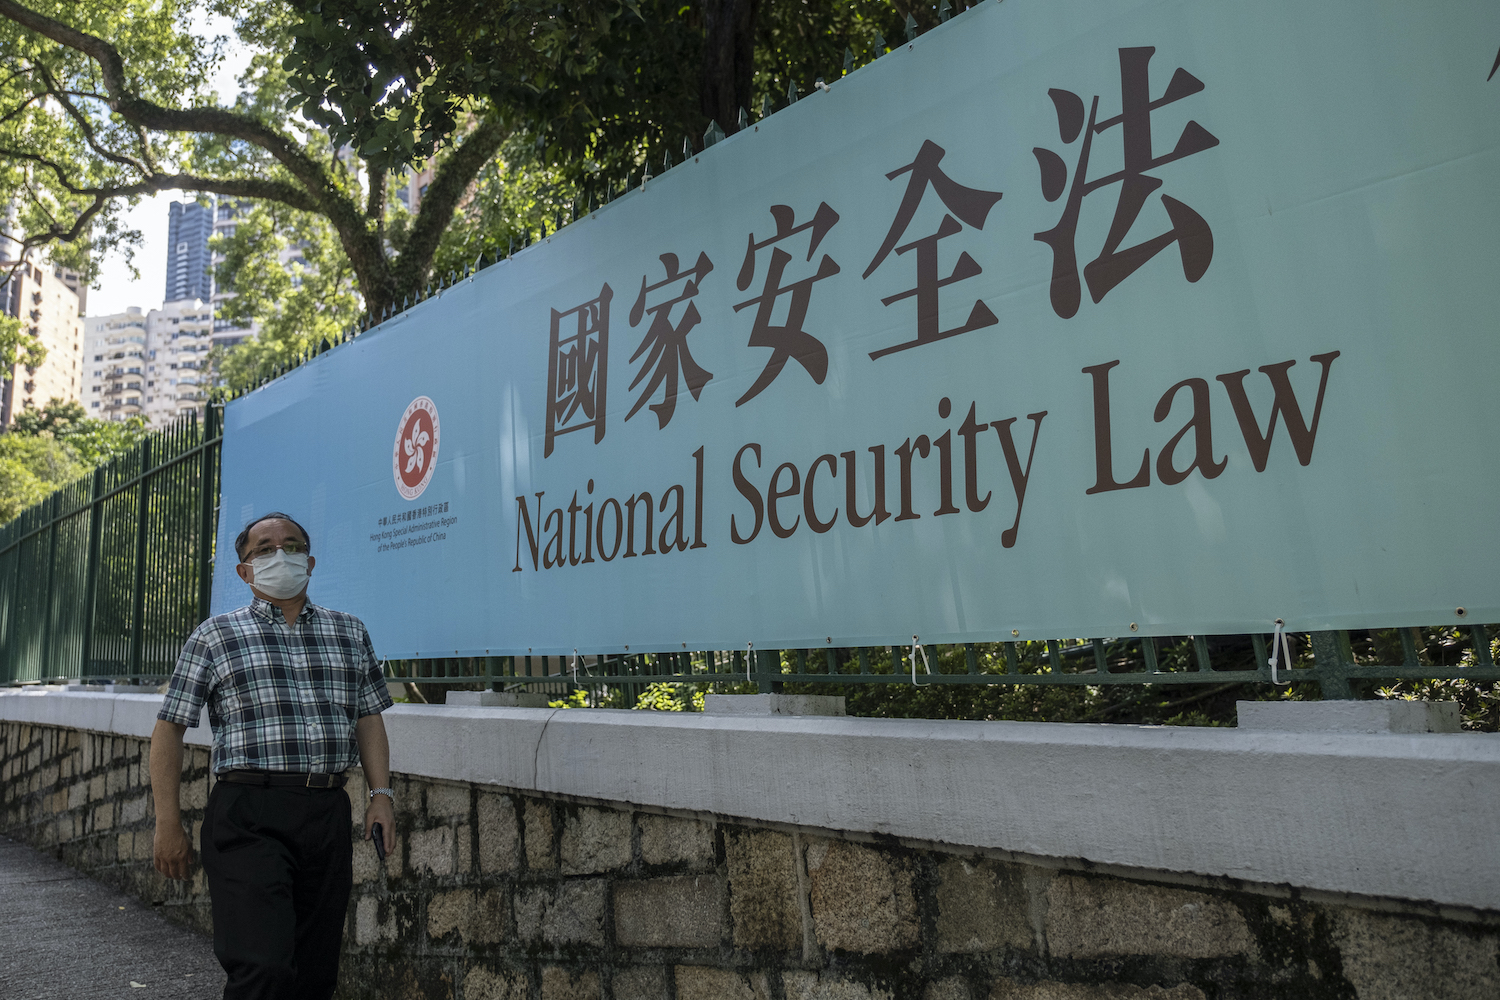 Beijing to have sweeping powers over Hong Kong security law